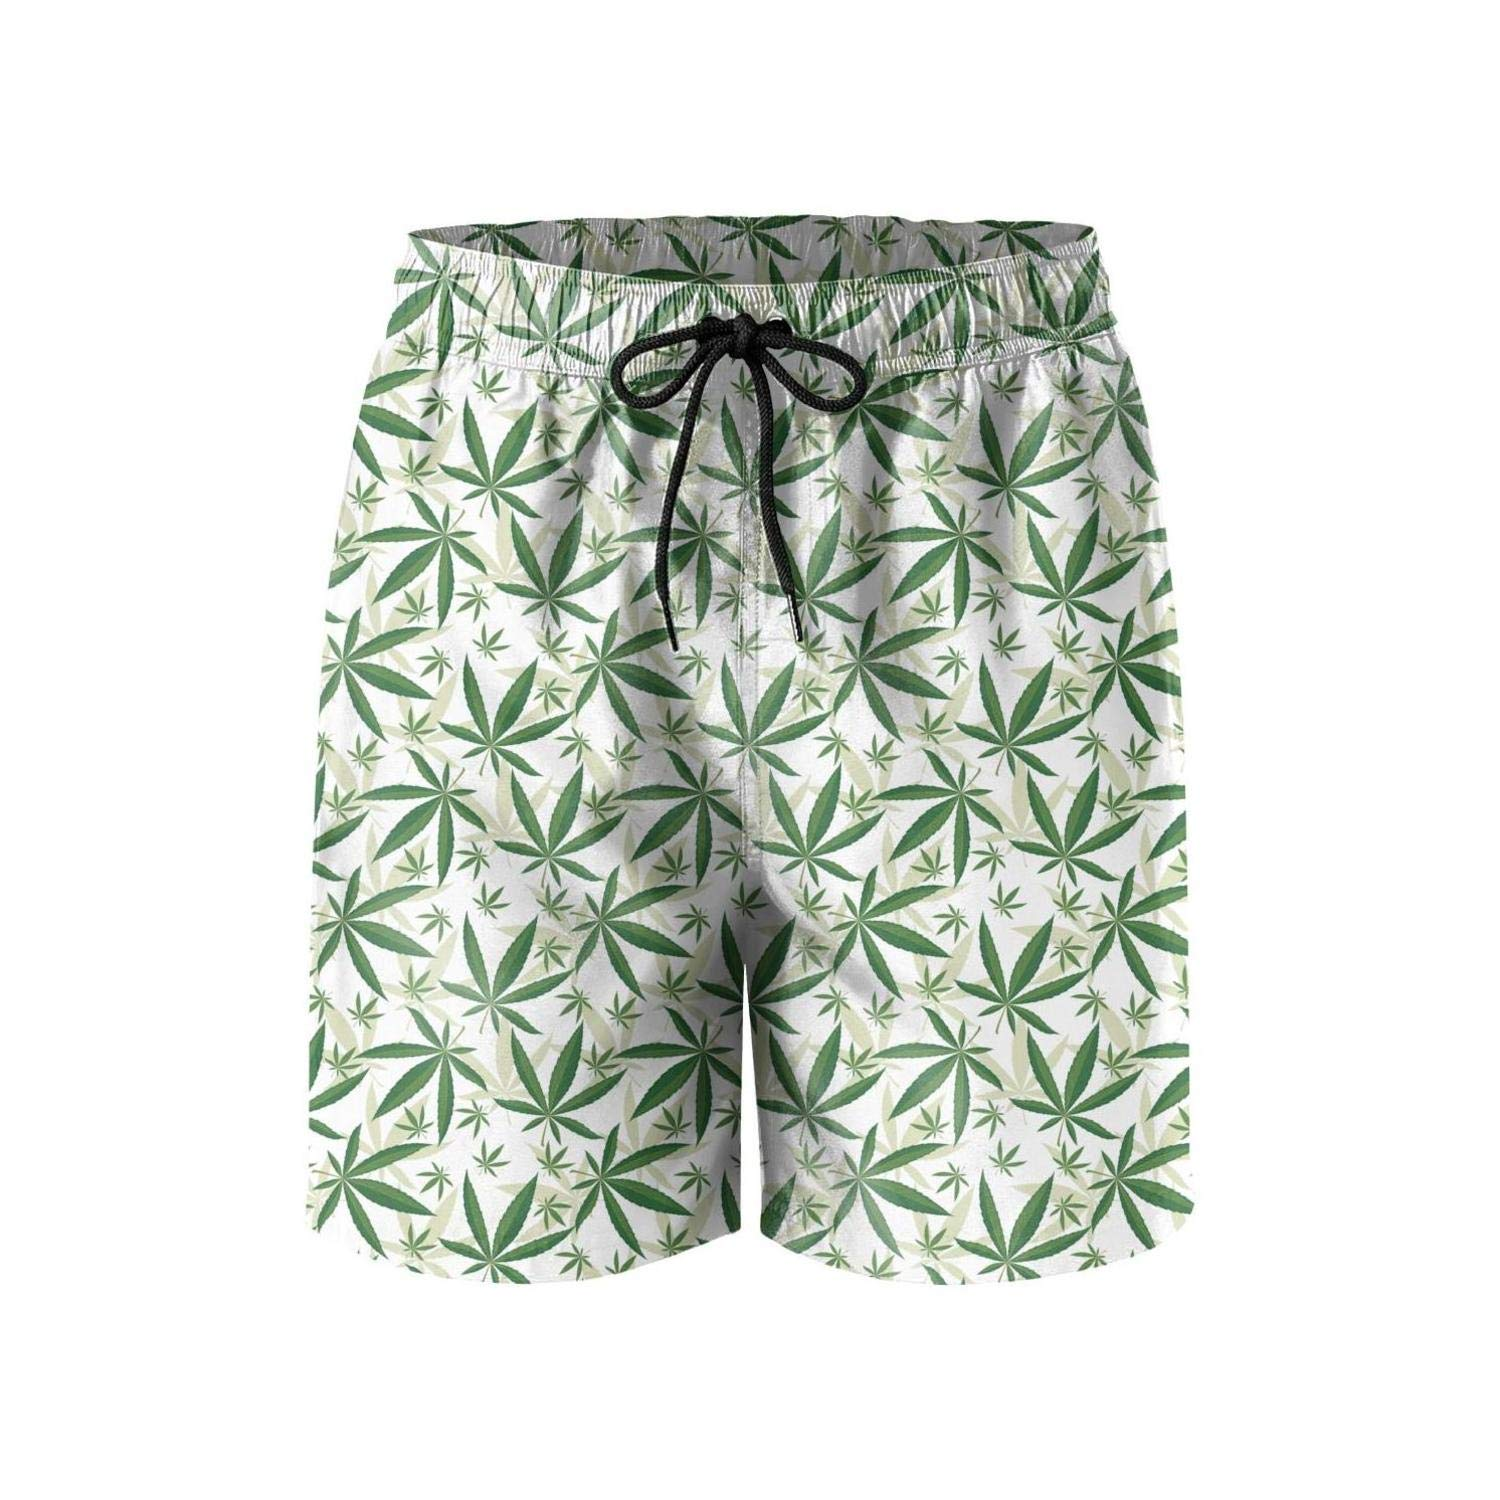 LKIMNJ Mens Cannabis White backgroud Shorts Lightweight Casual